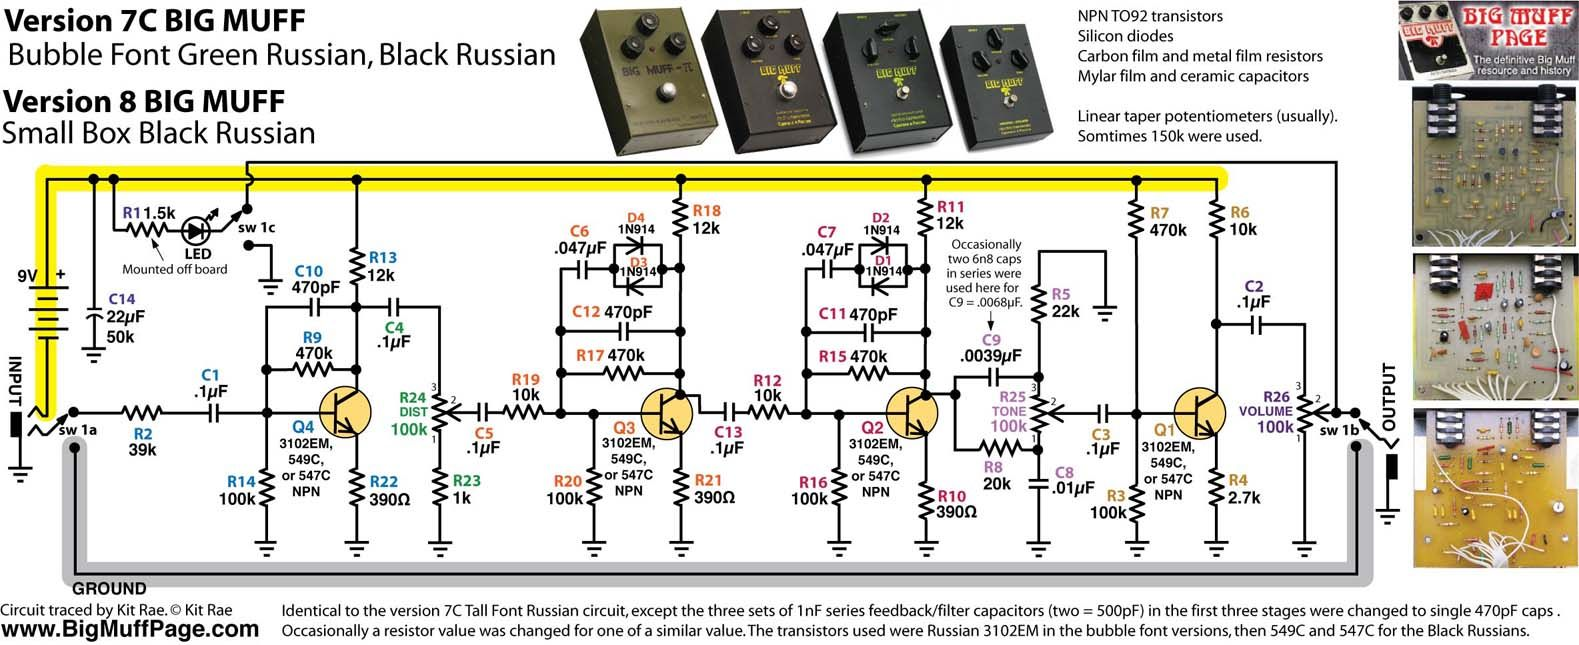 Bubble Font Black Russian Big Muff Schematic Guitar Pedal Amp The Circuit Design Of Mosfet Power Amplifier 5200w Rms